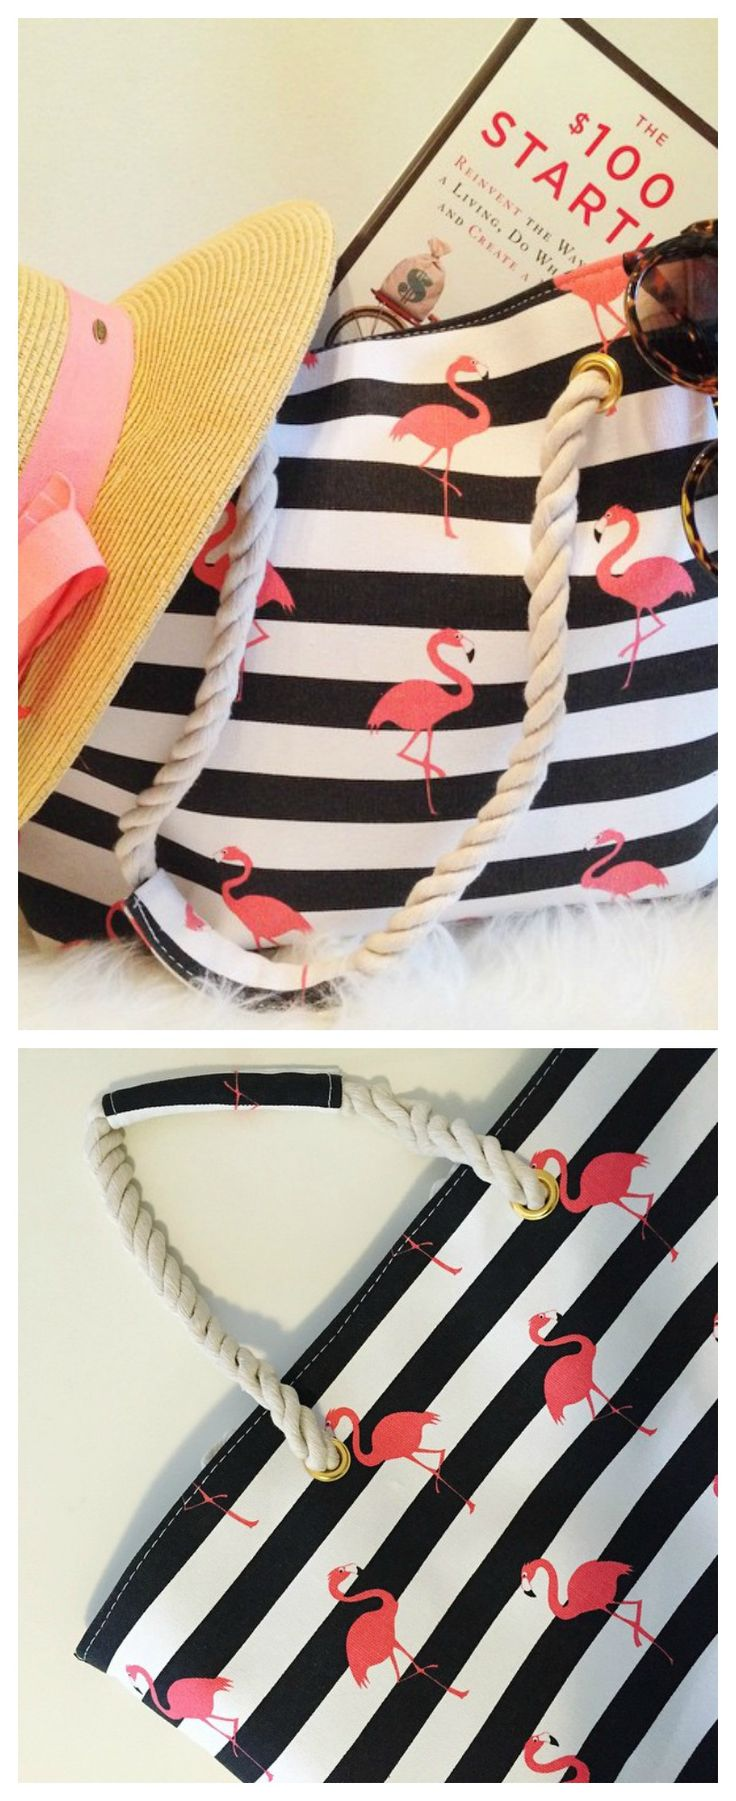 Pink Flamingo canvas tote bag for whatever needs haulin'. @petiteetoilcreative @lipglossandcrayons